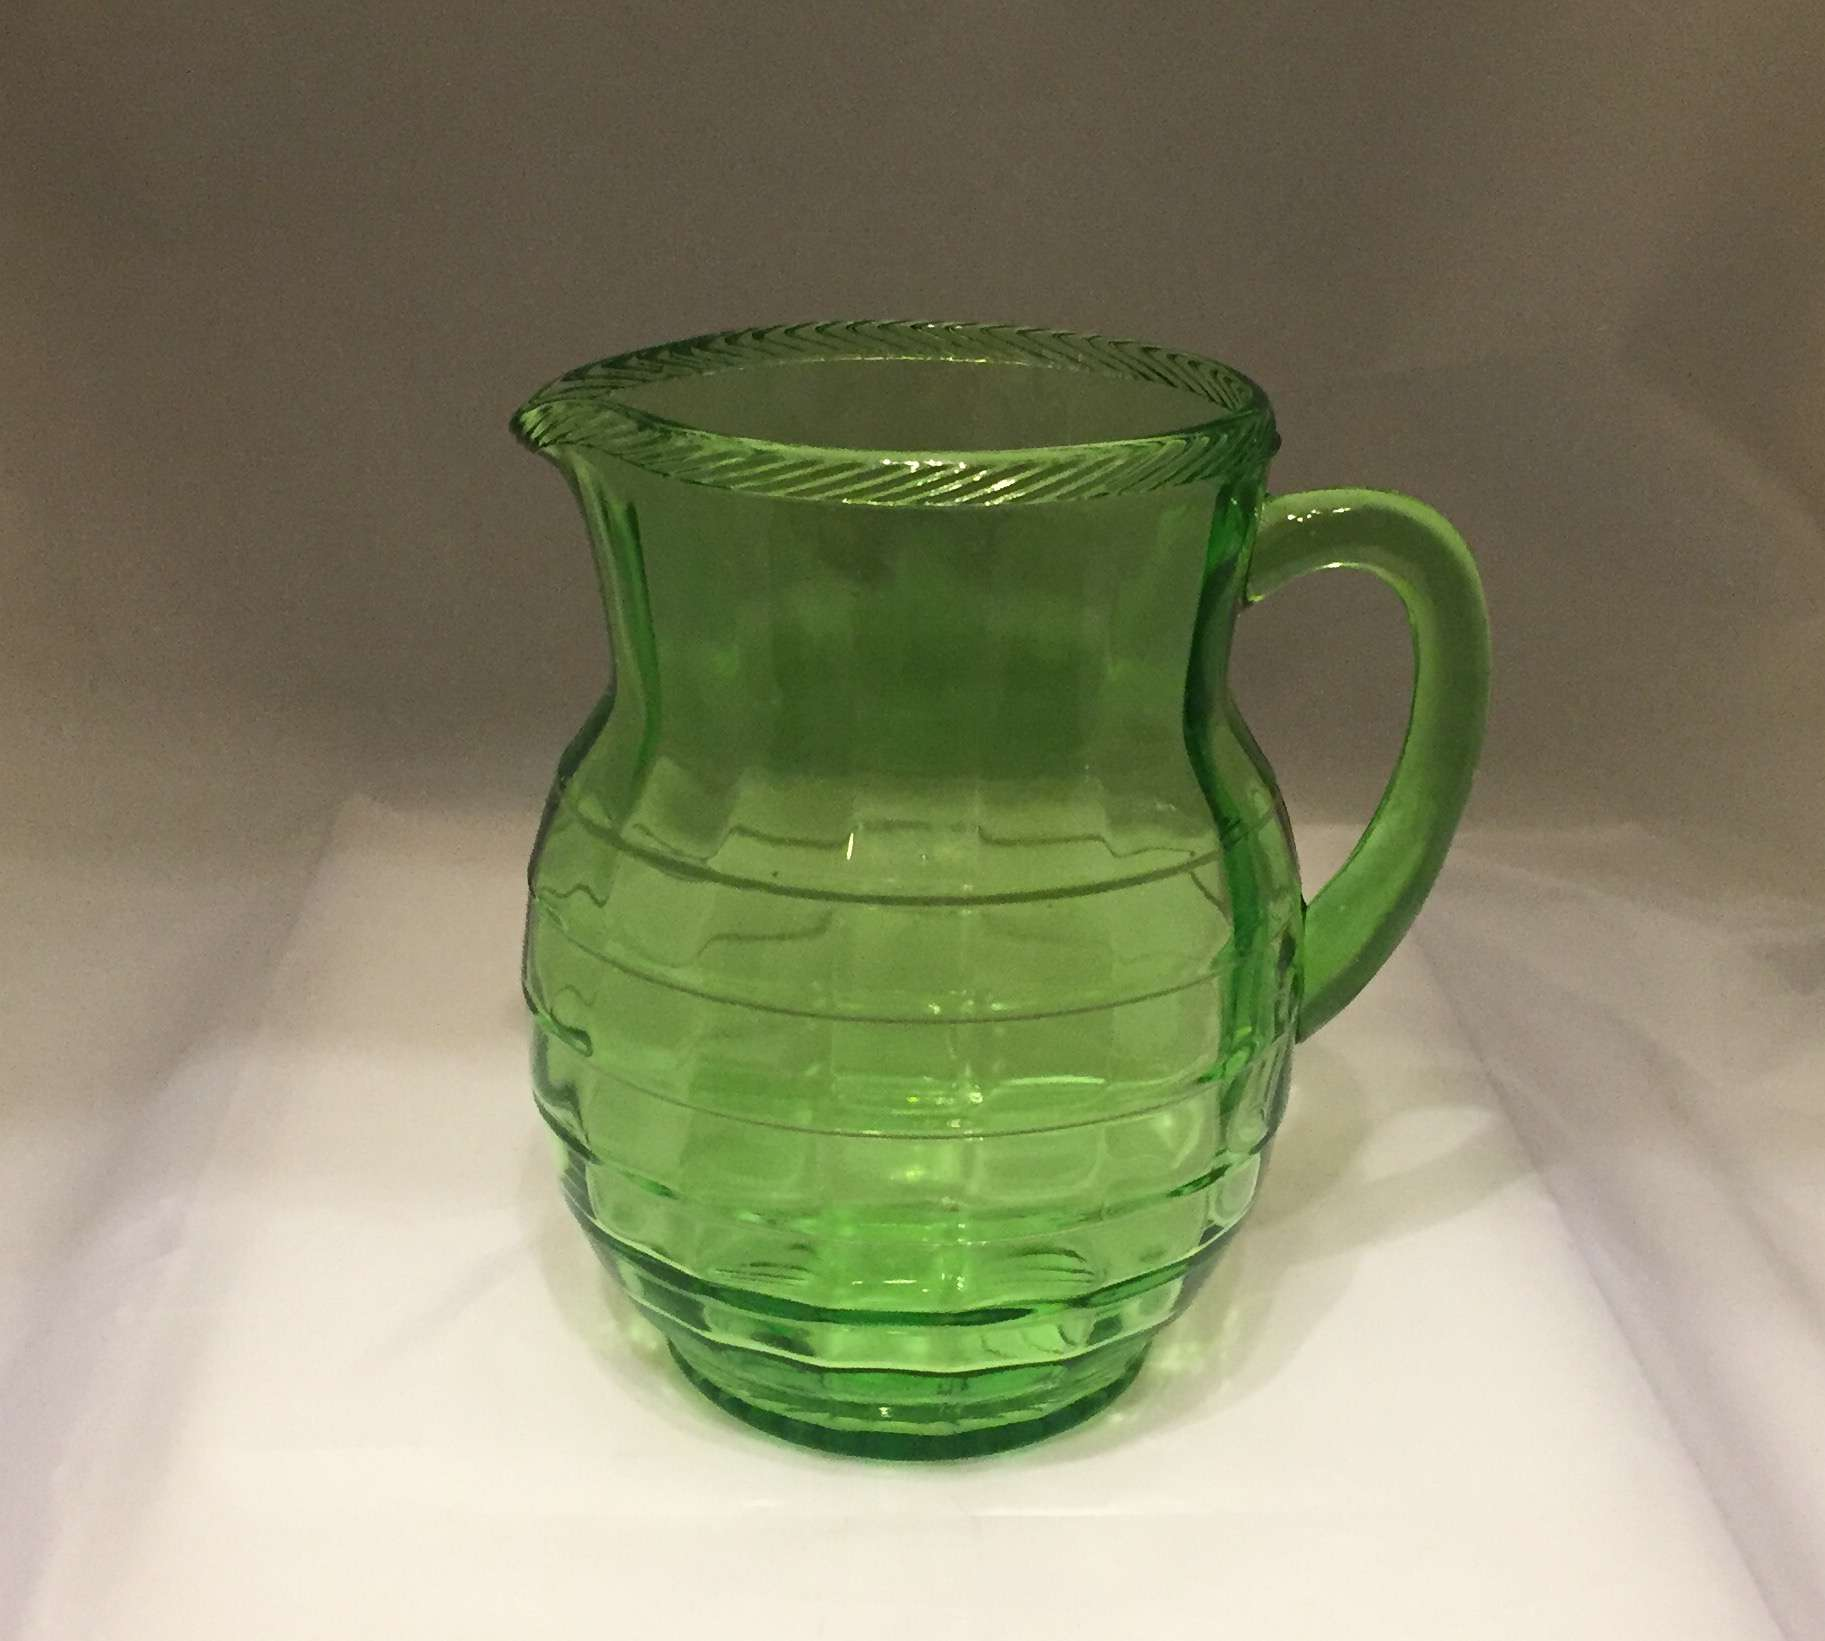 Most Valuable Depression Glass Patterns New Inspiration Design